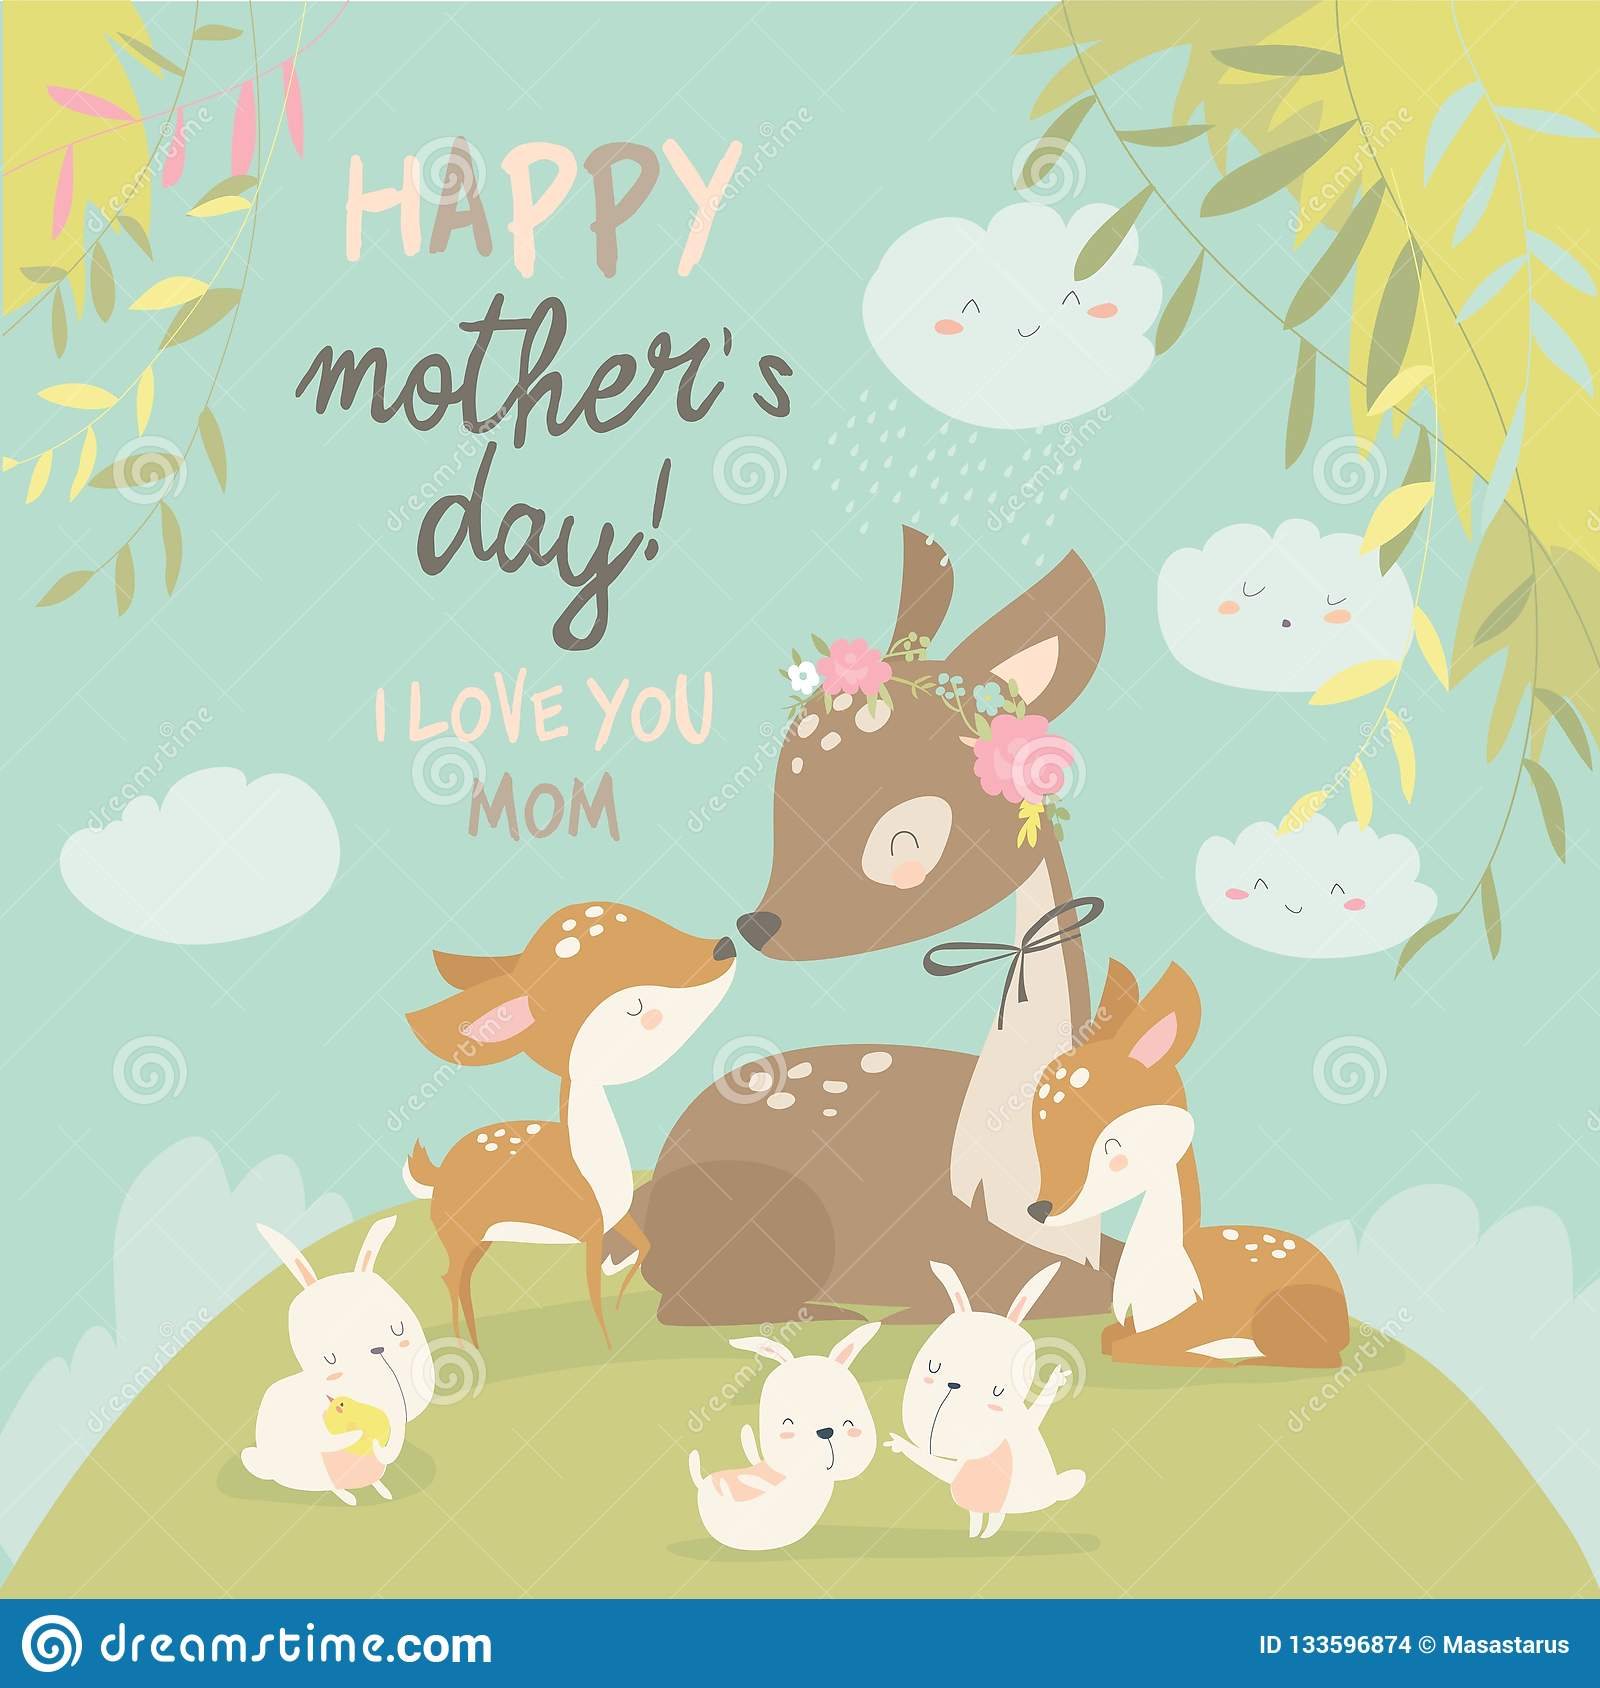 Cartoon Deer Family Mother And Baby Cute Animals For Mothers Day Animals Mom And Baby Stock Vector Illustration Of Mother Parent 133596874